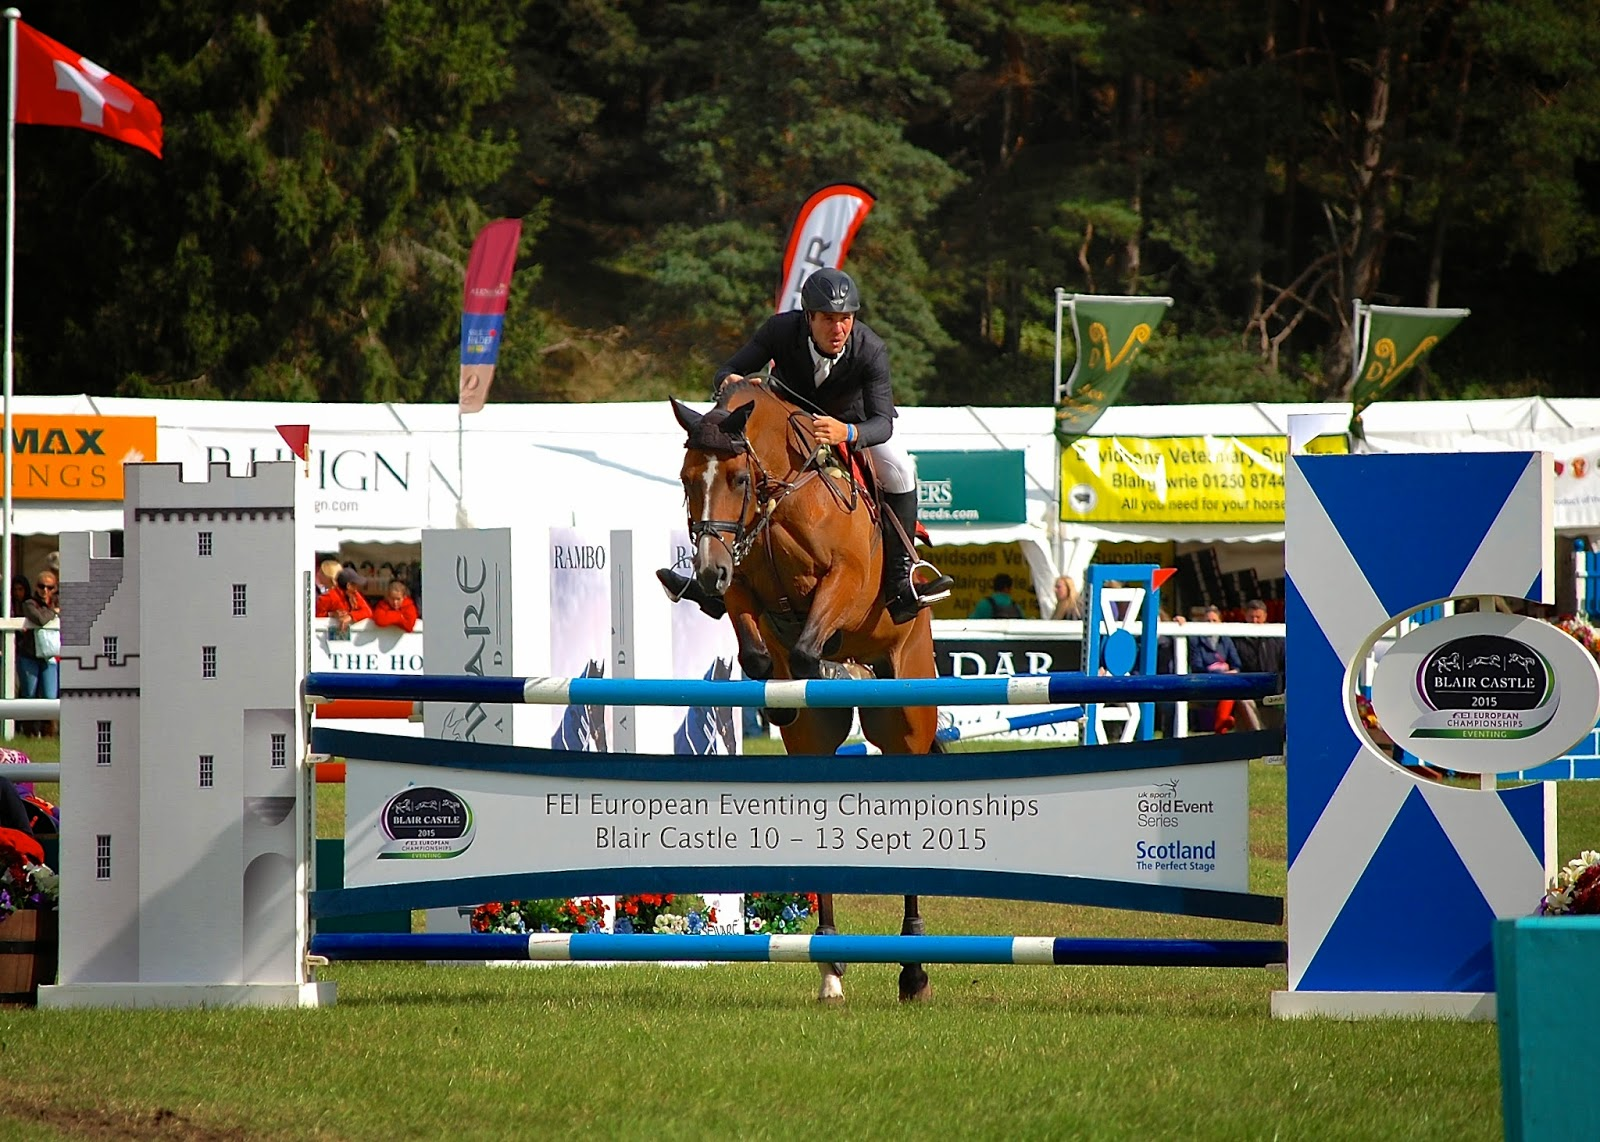 FEI European Eventing Championships at Blair Castle, 10 - 13 September 2015